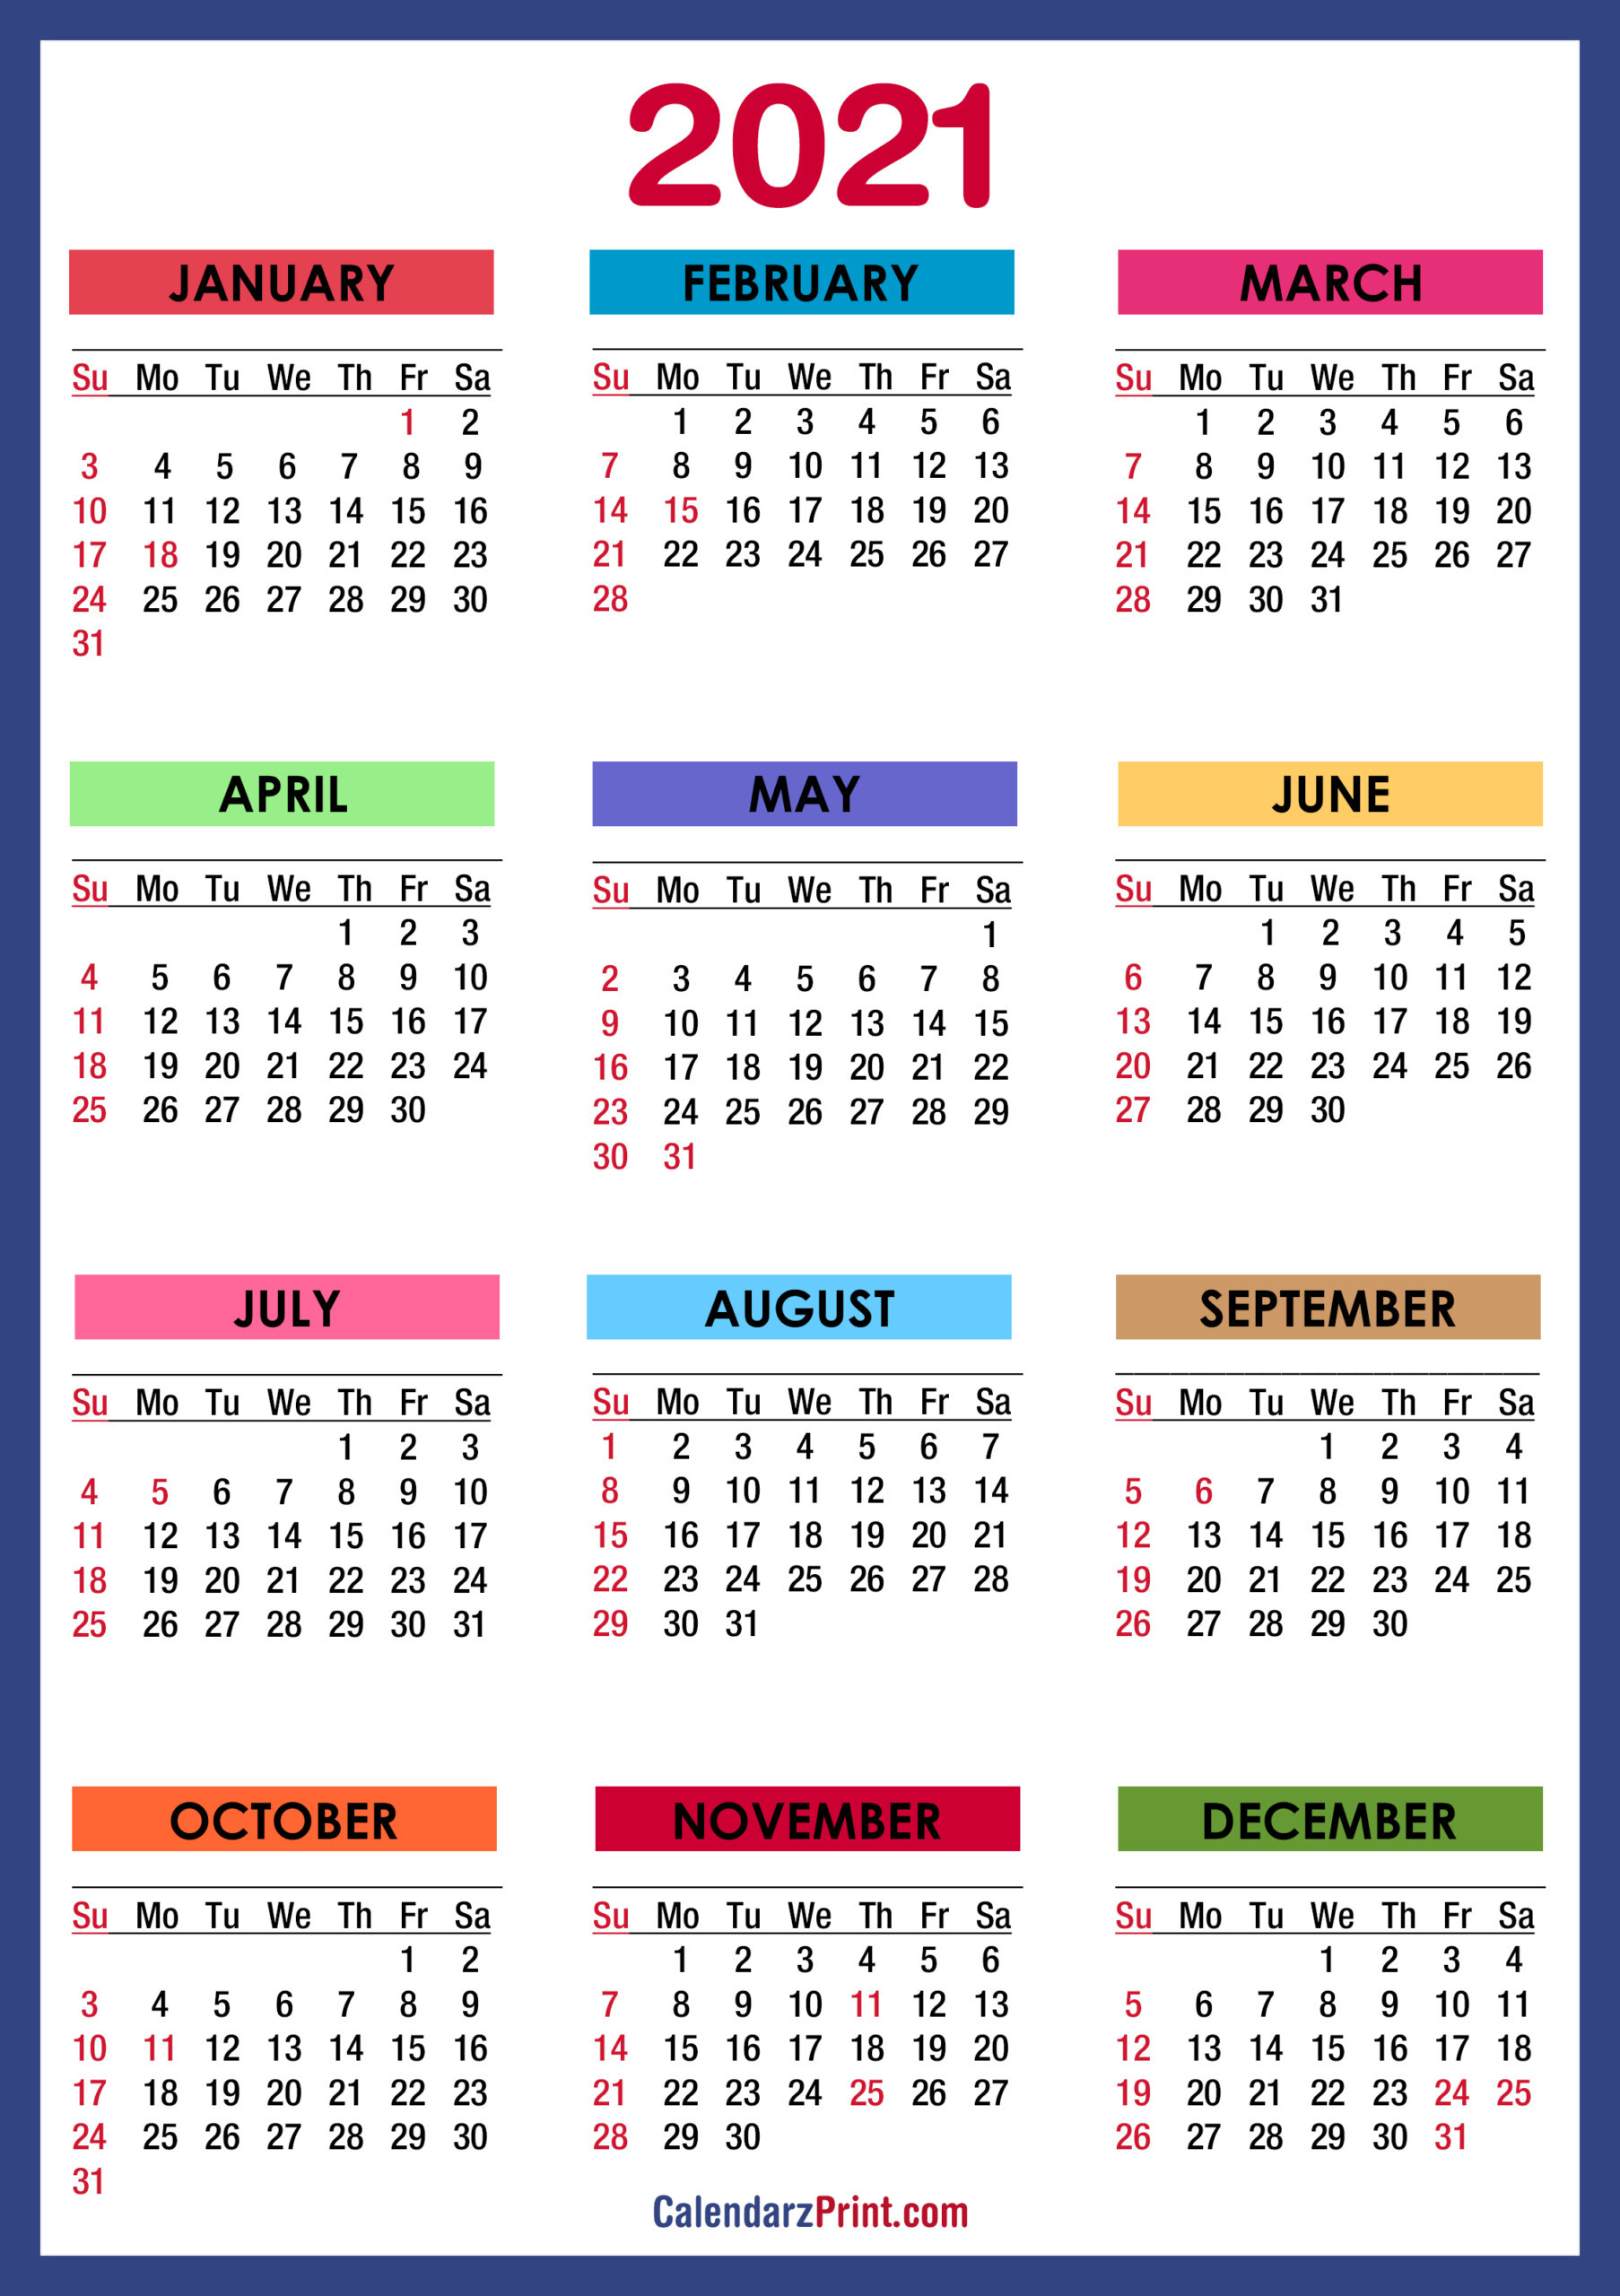 Free Printable 2021 Monthly Calendar With Us Holidays-2021 Calendars To Fill In And Print